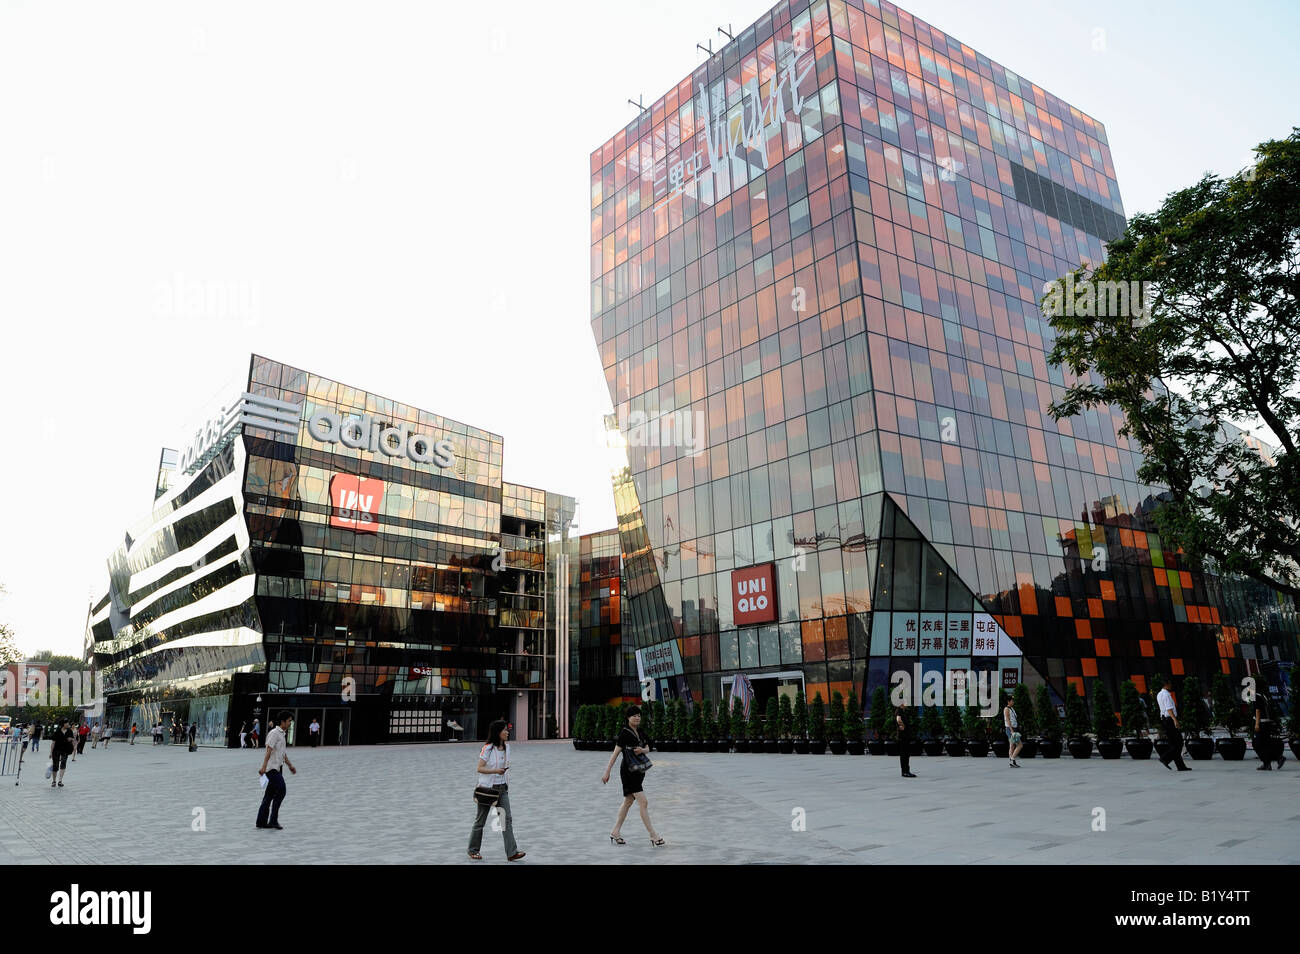 Adidas and Uni Qlo stores in Sanlitun, Beijing, China. 06-Jul-2008 - Stock Image